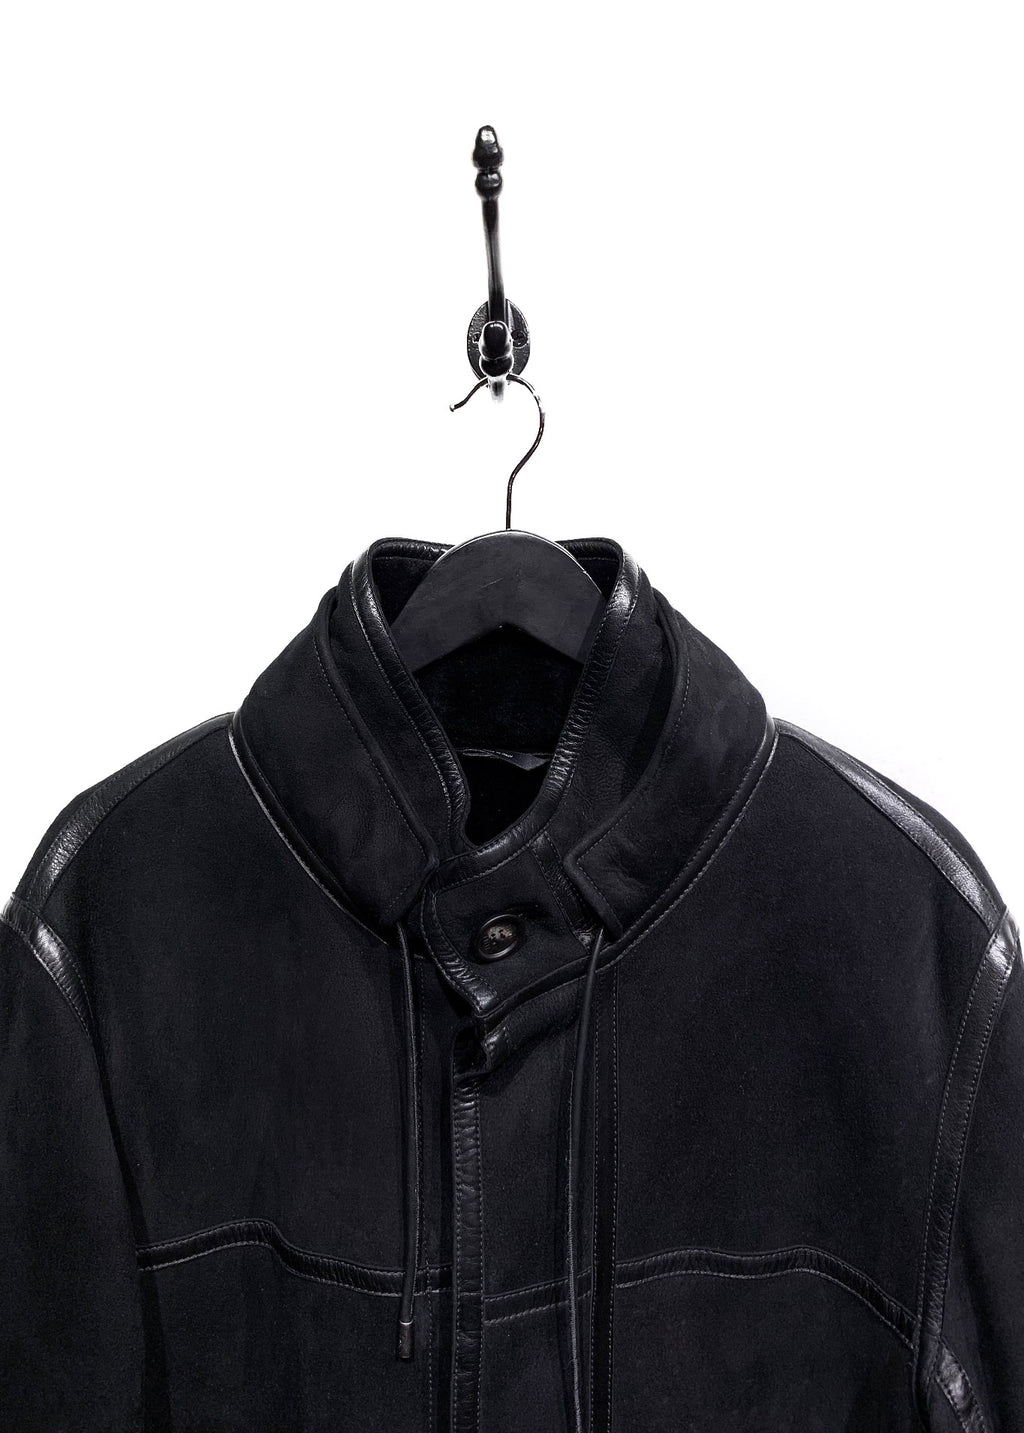 Fendi Black Leather Trim Shearling Coat